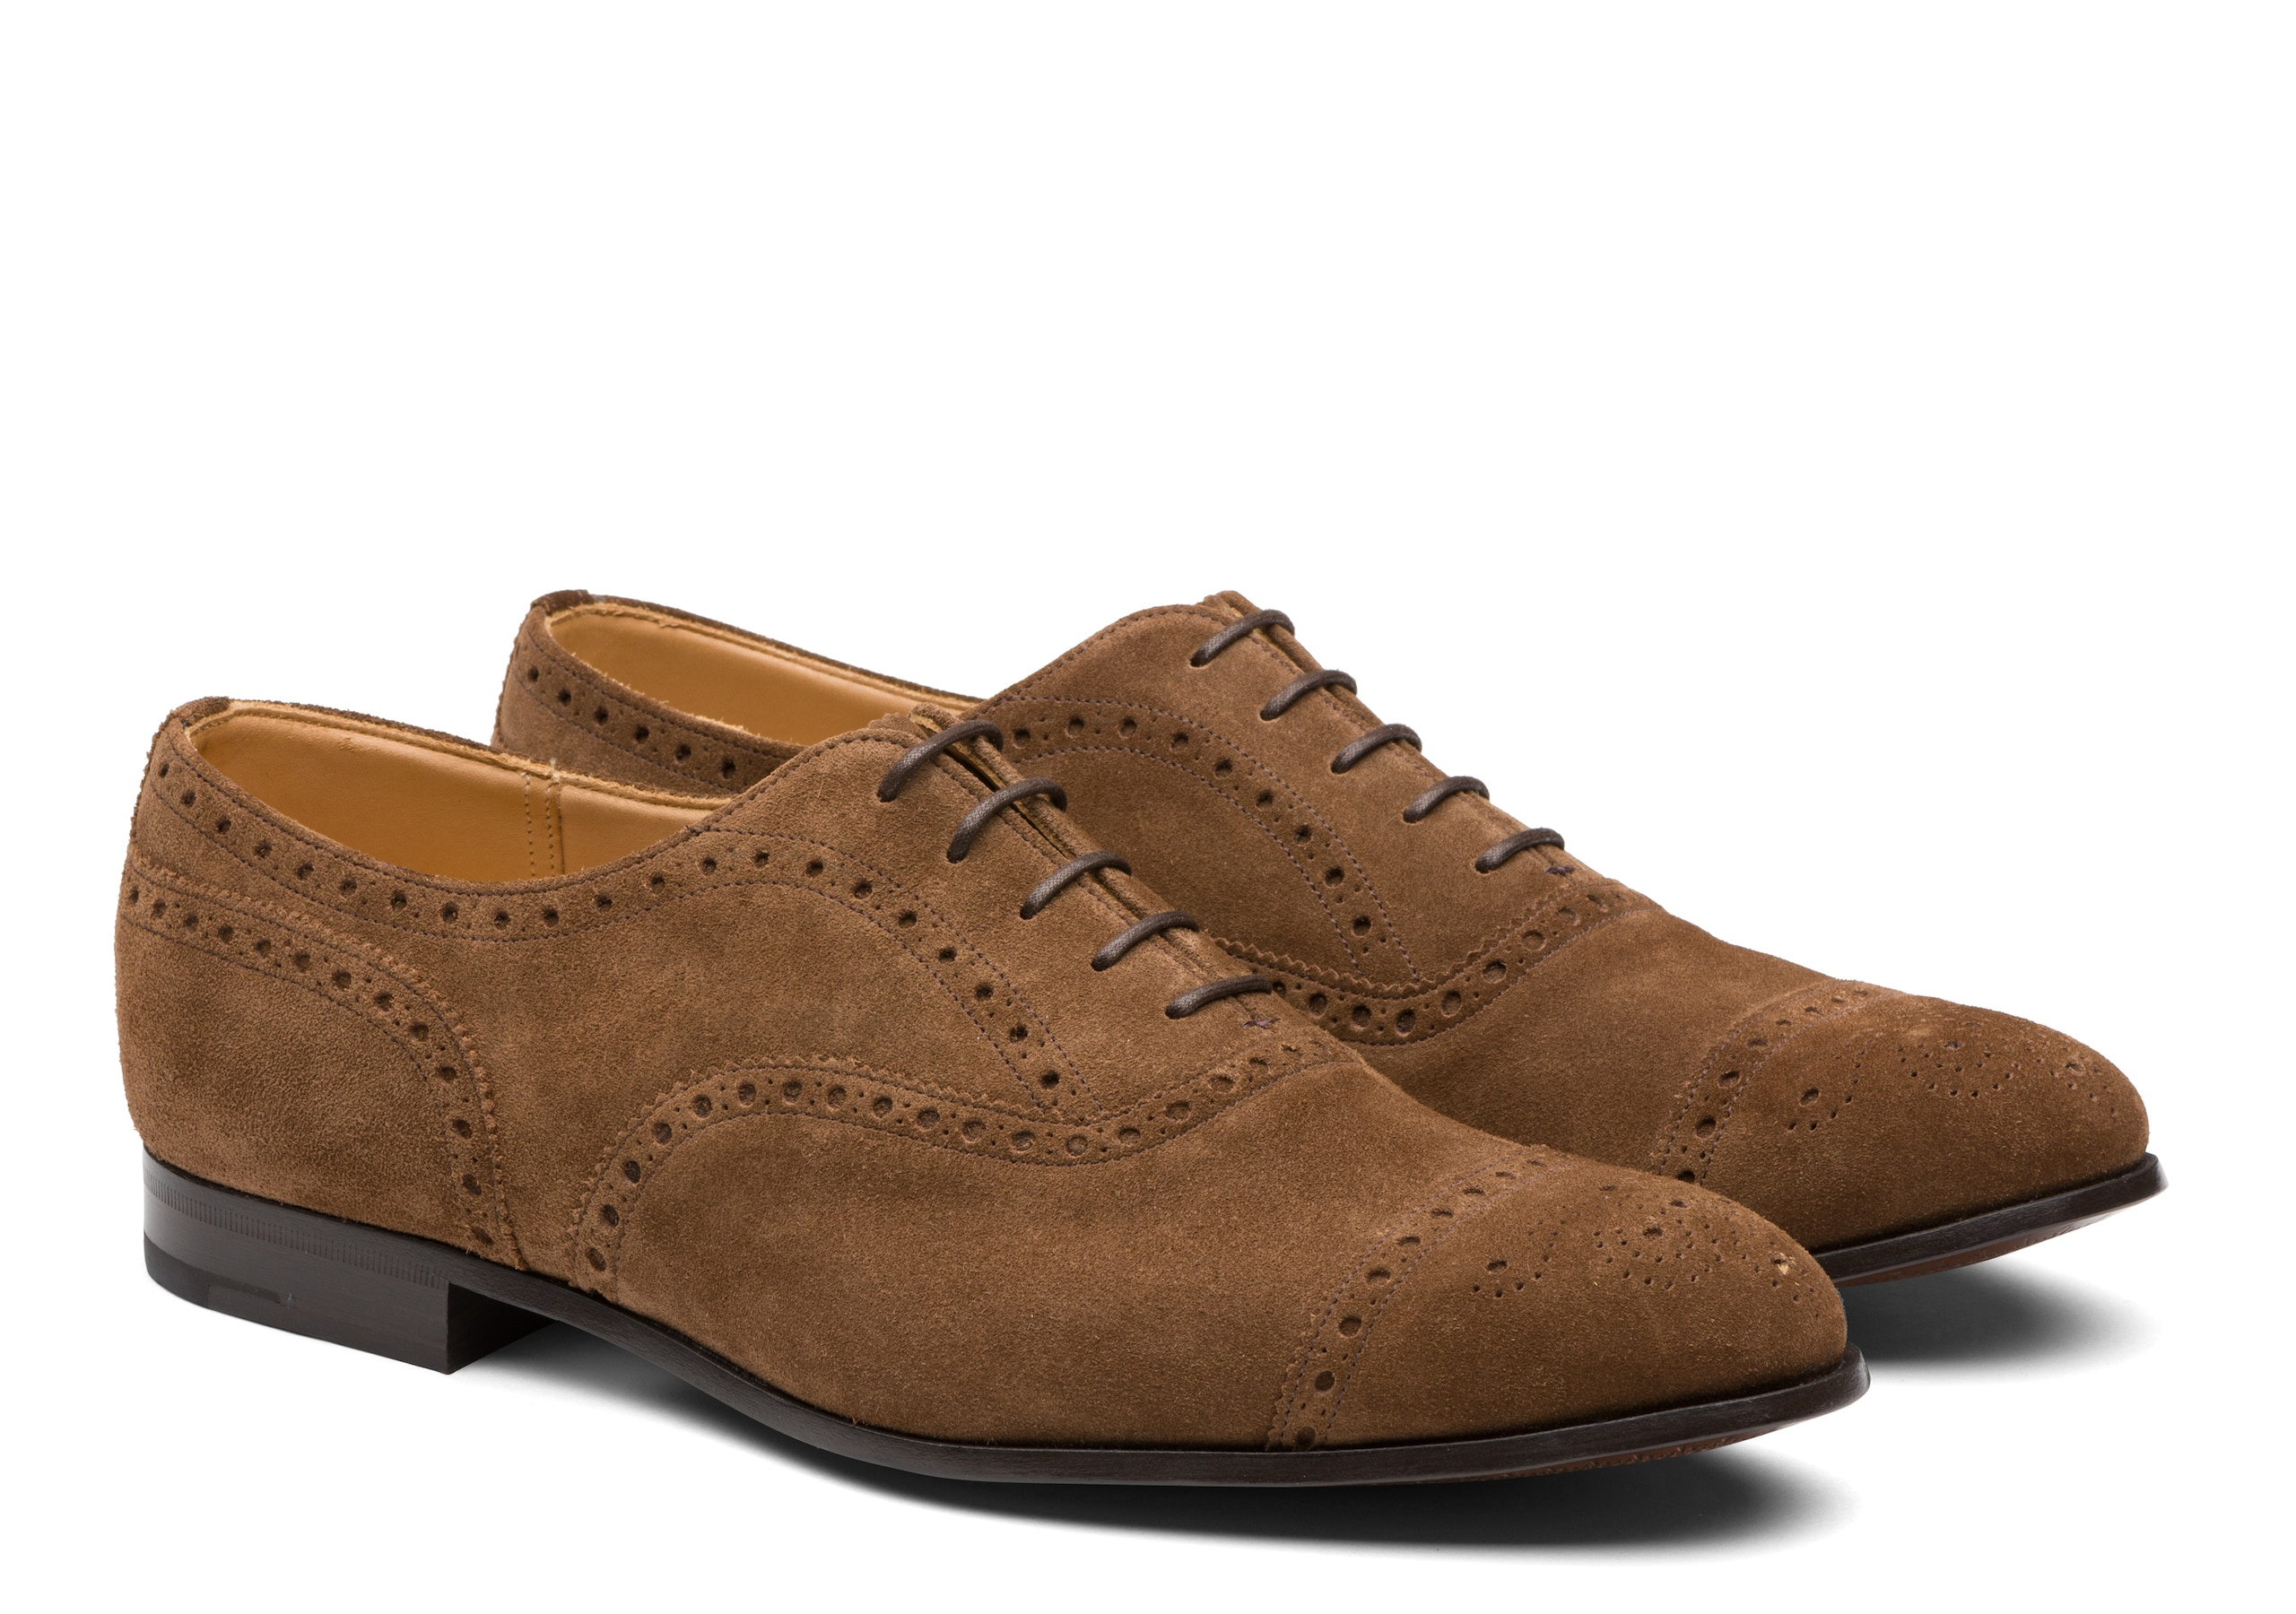 Duxford Church's Suede Oxford Brogue Brown